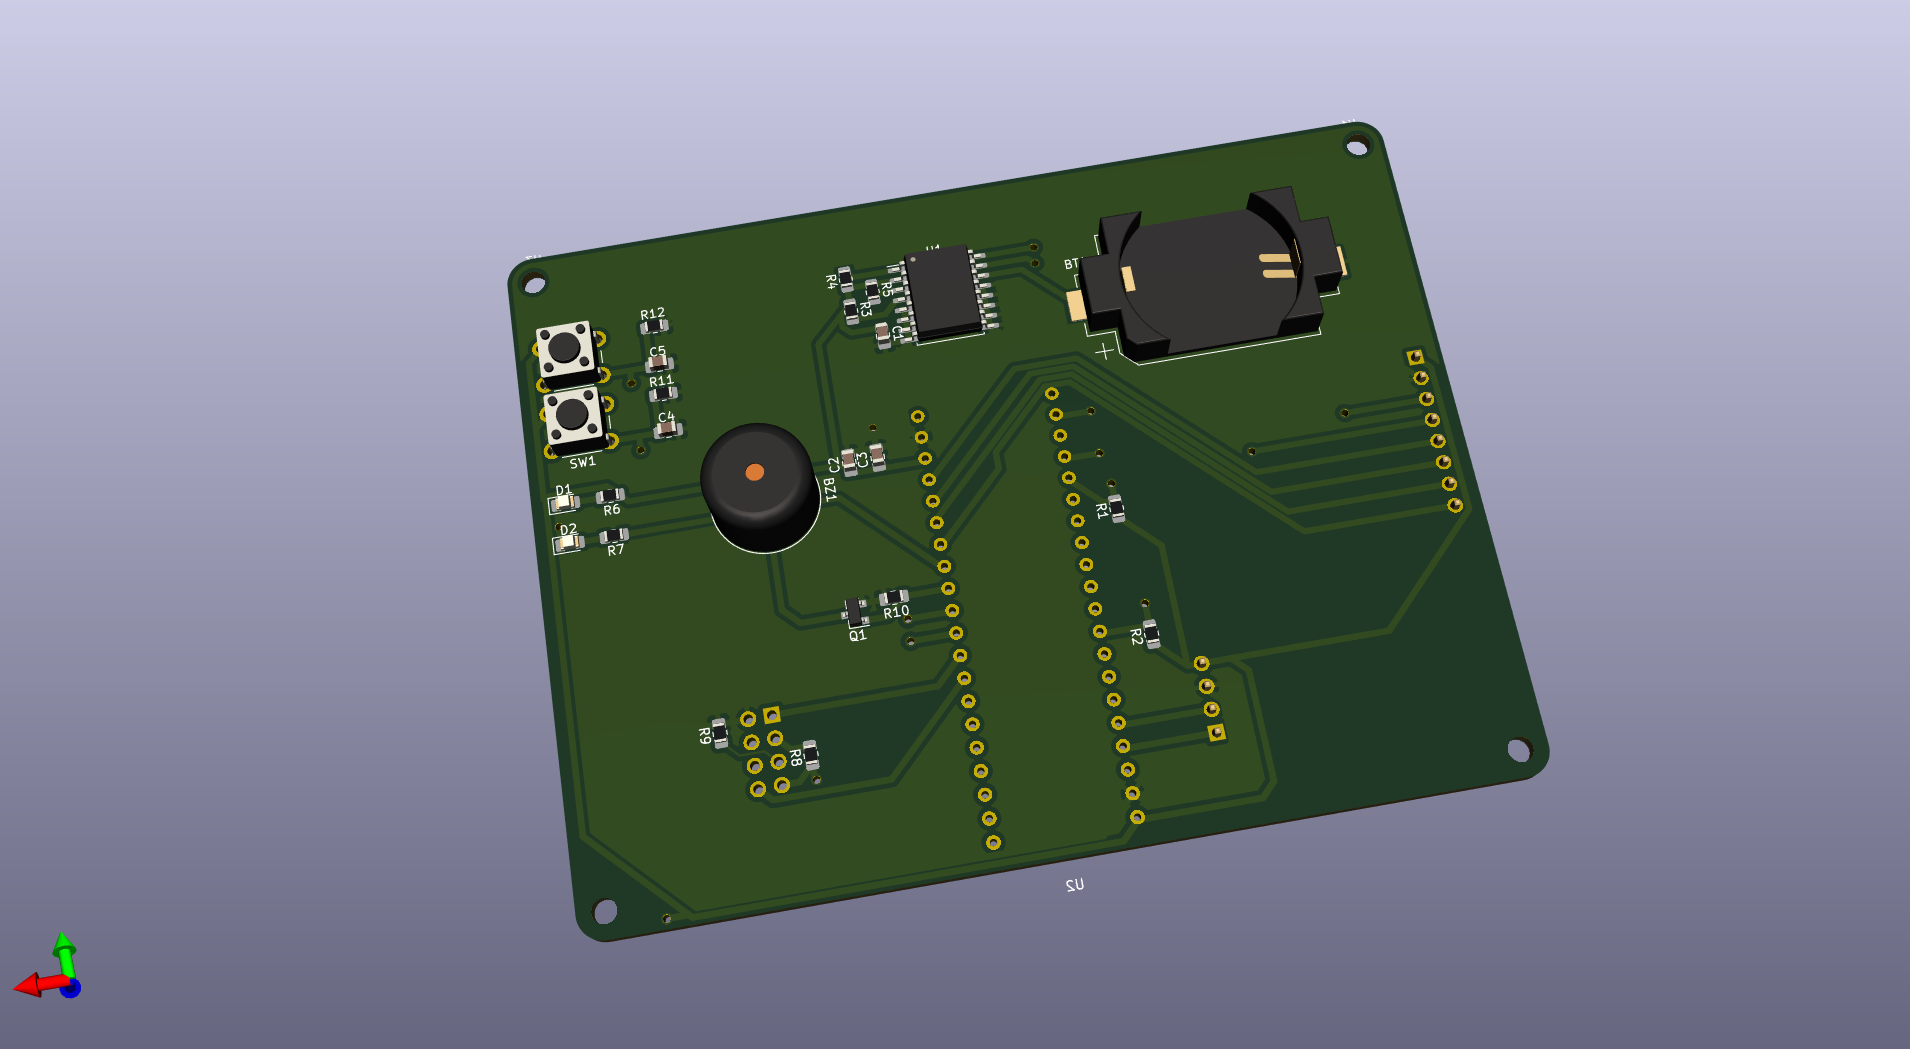 A rendered circuit board